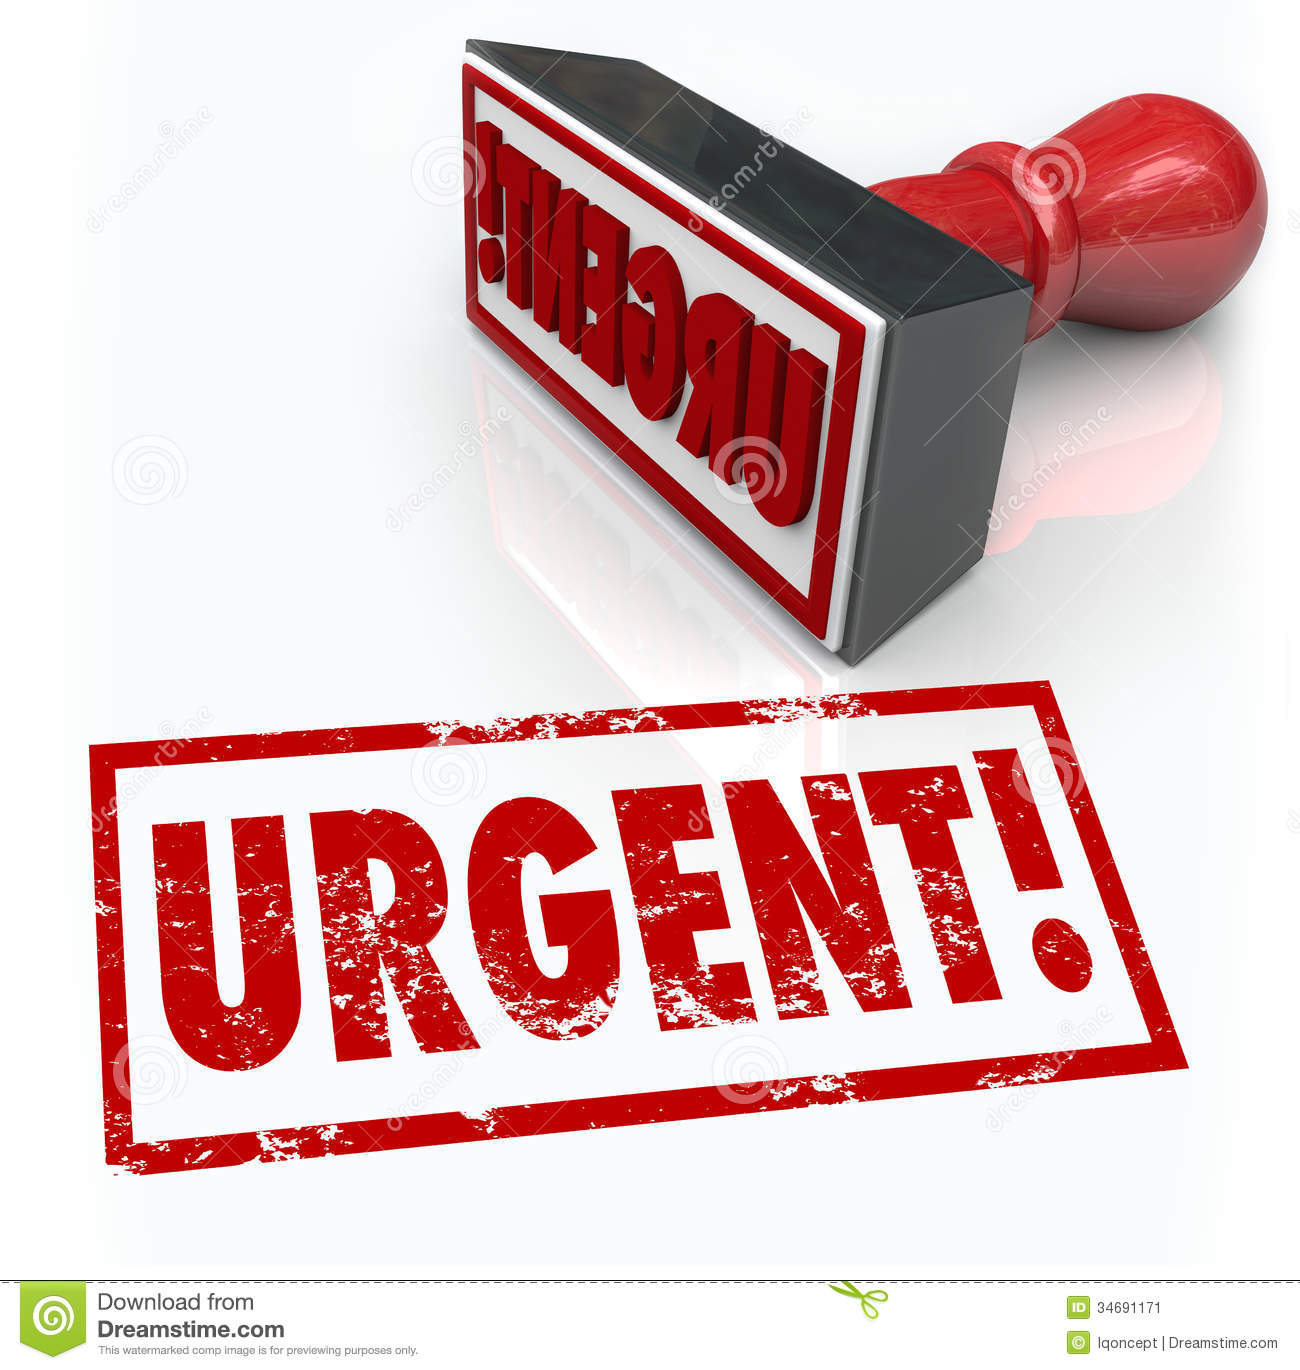 The Word Urgent On A Red Rubber Stamp To Illustrate An Emergency Or